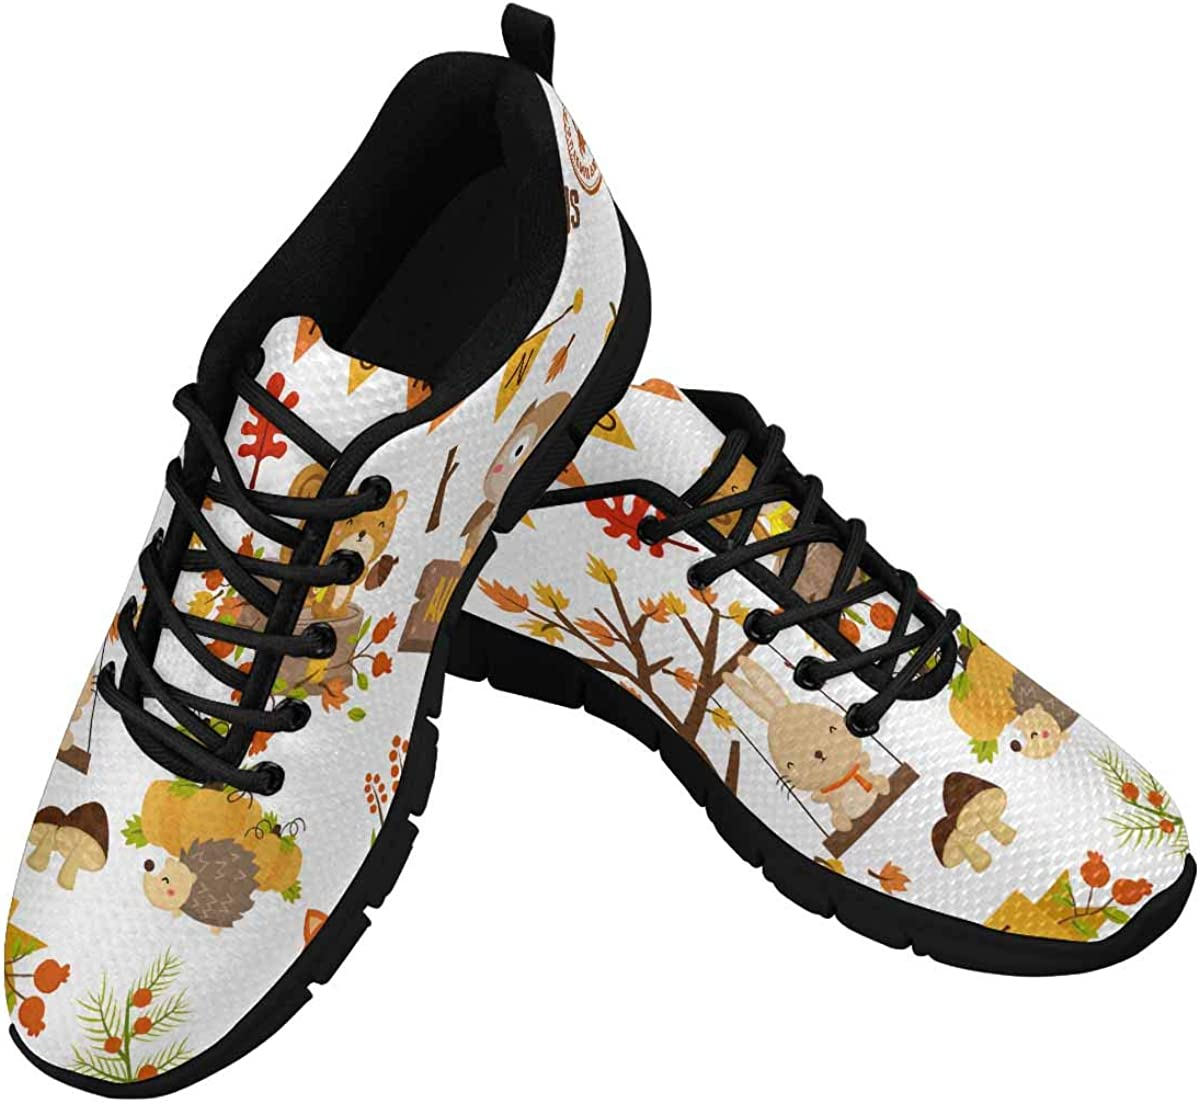 INTERESTPRINT Animal Woodland Autumn Women's Athletic Mesh Breathable Casual Sneaker